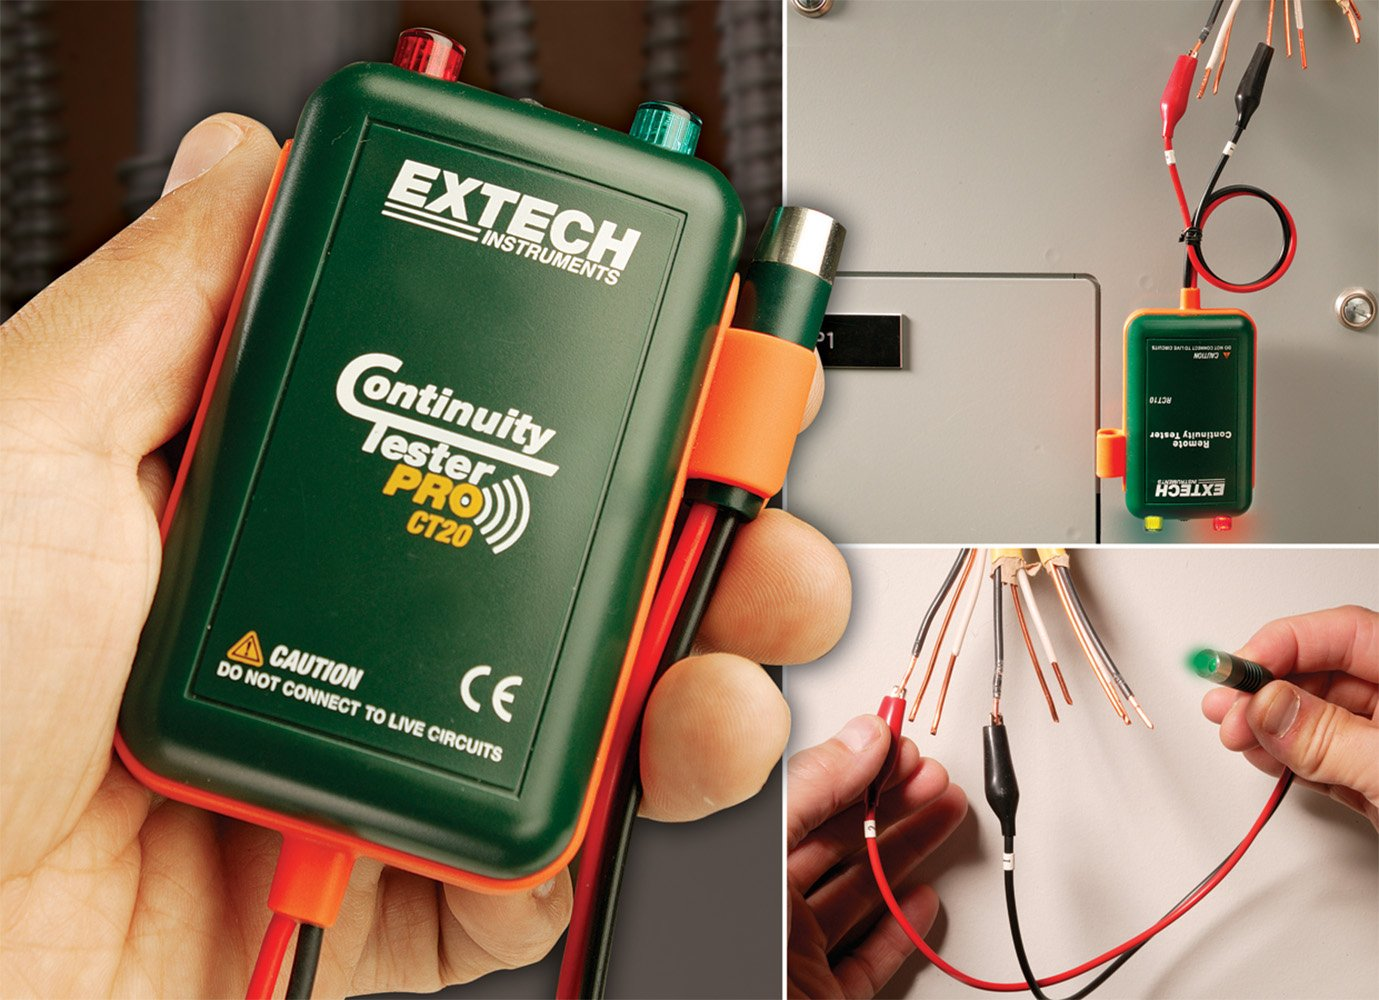 Extech Ct20 Remote And Local Continuity Tester Circuit Testers Details About Ideal Digital Breaker Finder Fuse